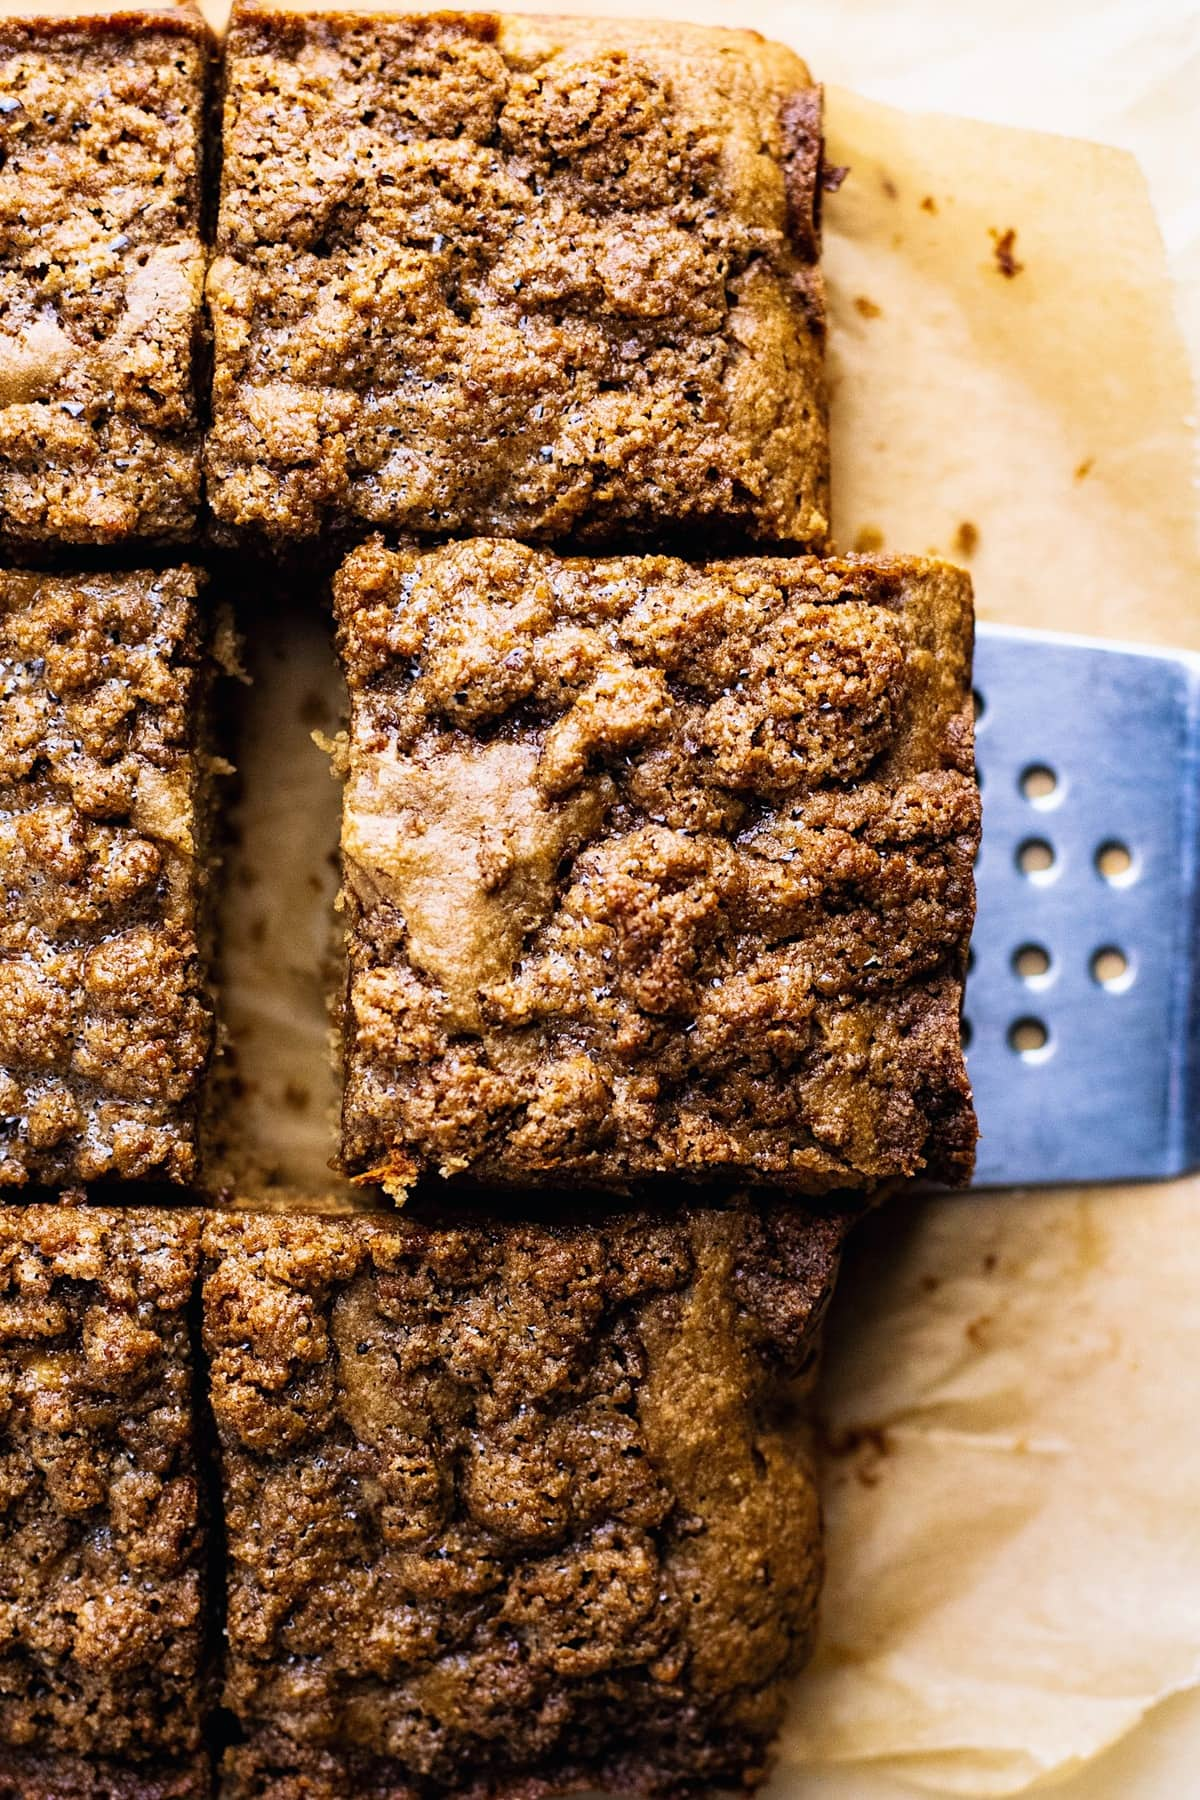 A spatula picking up a slice of banana coffee cake on brown parchment paper.